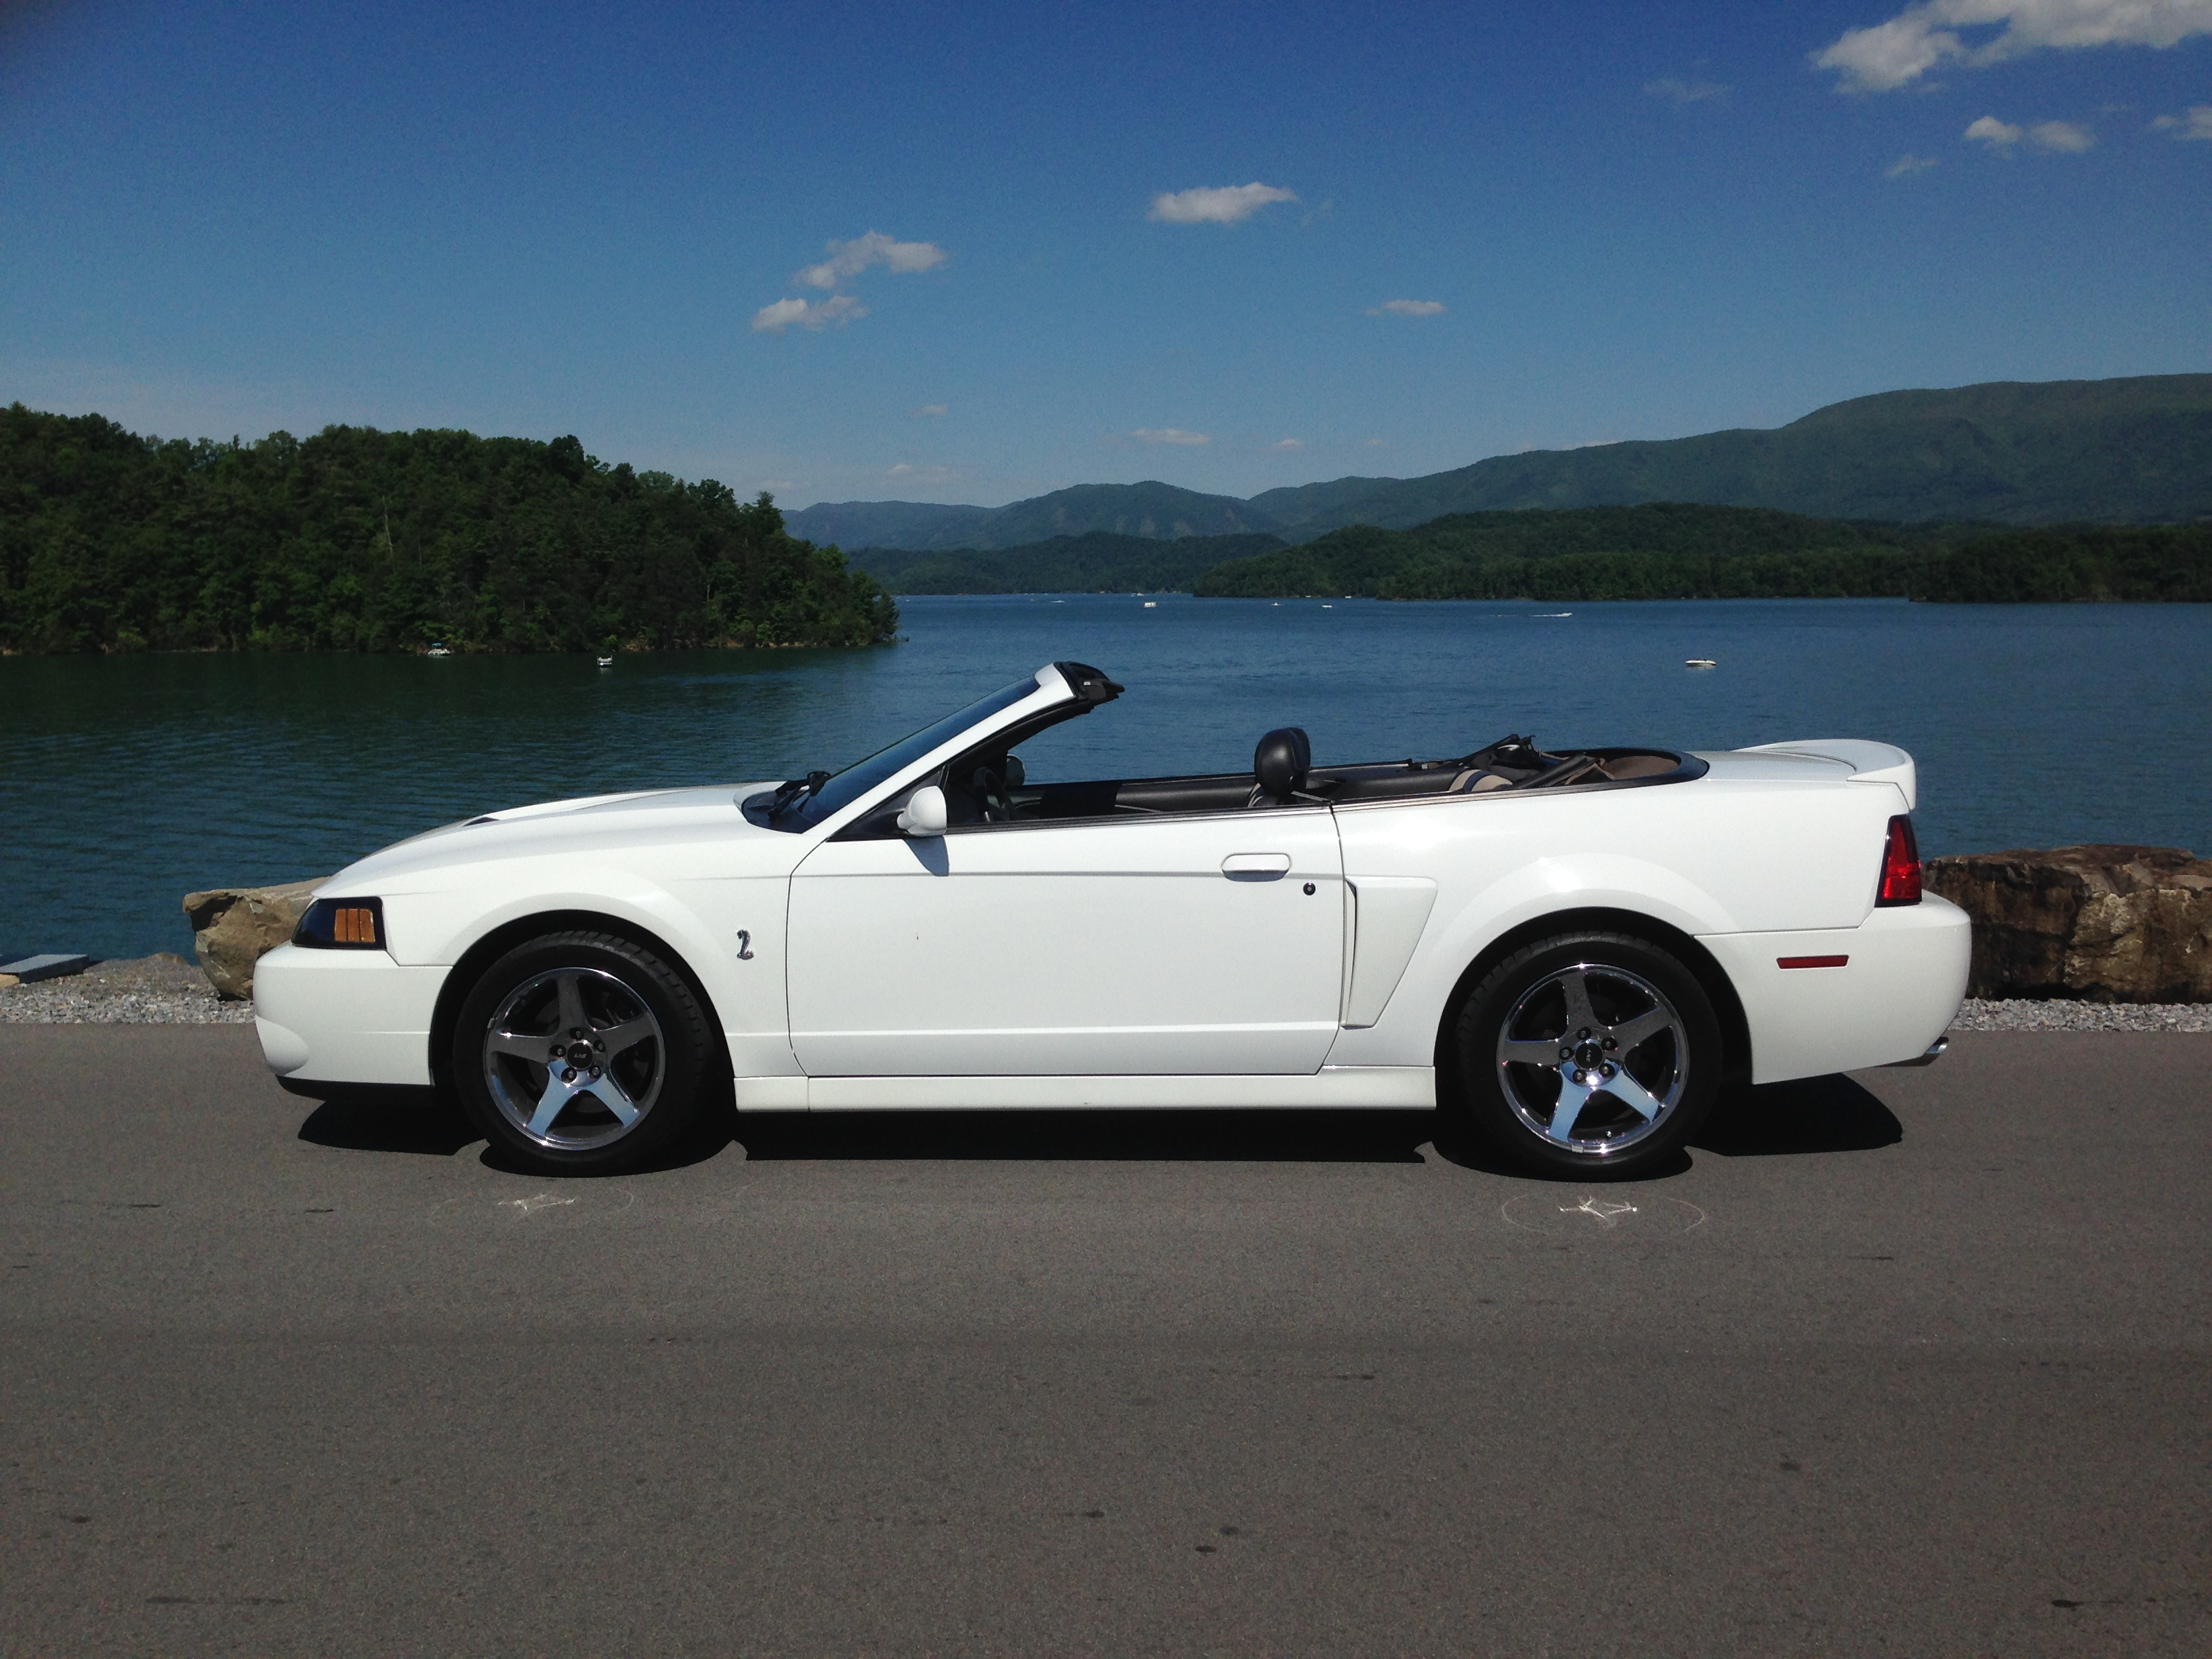 Joe Pearce - South Holston Dam - 2003 Ford Mustang SVT Cobra